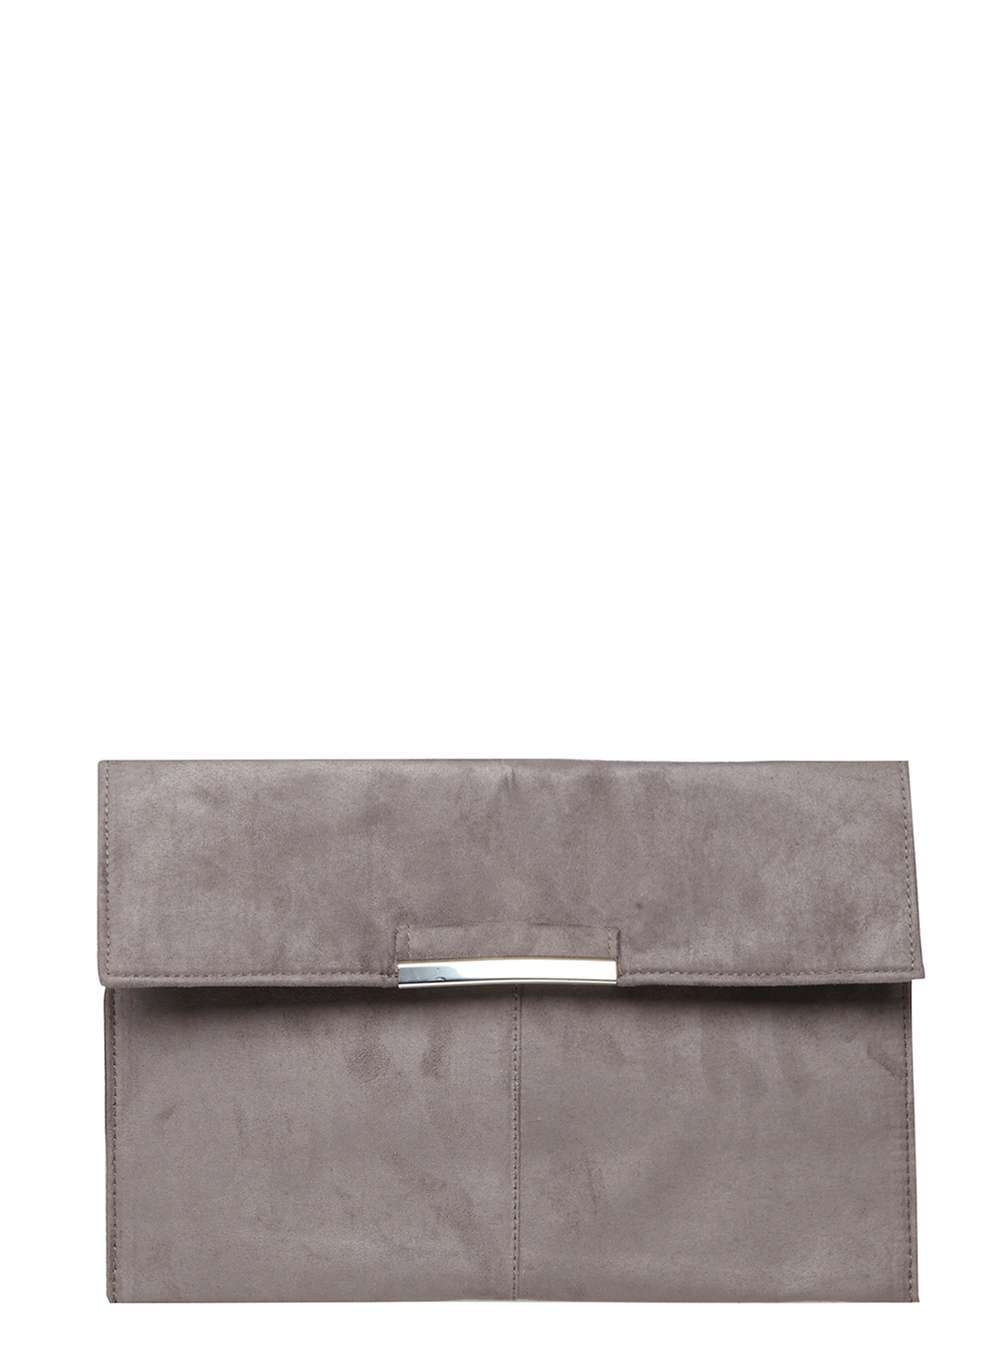 Womens Grey Faux Suede Tab Clutch Grey - predominant colour: charcoal; occasions: evening, occasion; type of pattern: standard; style: clutch; length: hand carry; size: standard; pattern: plain; finish: plain; material: faux suede; season: a/w 2016; wardrobe: event